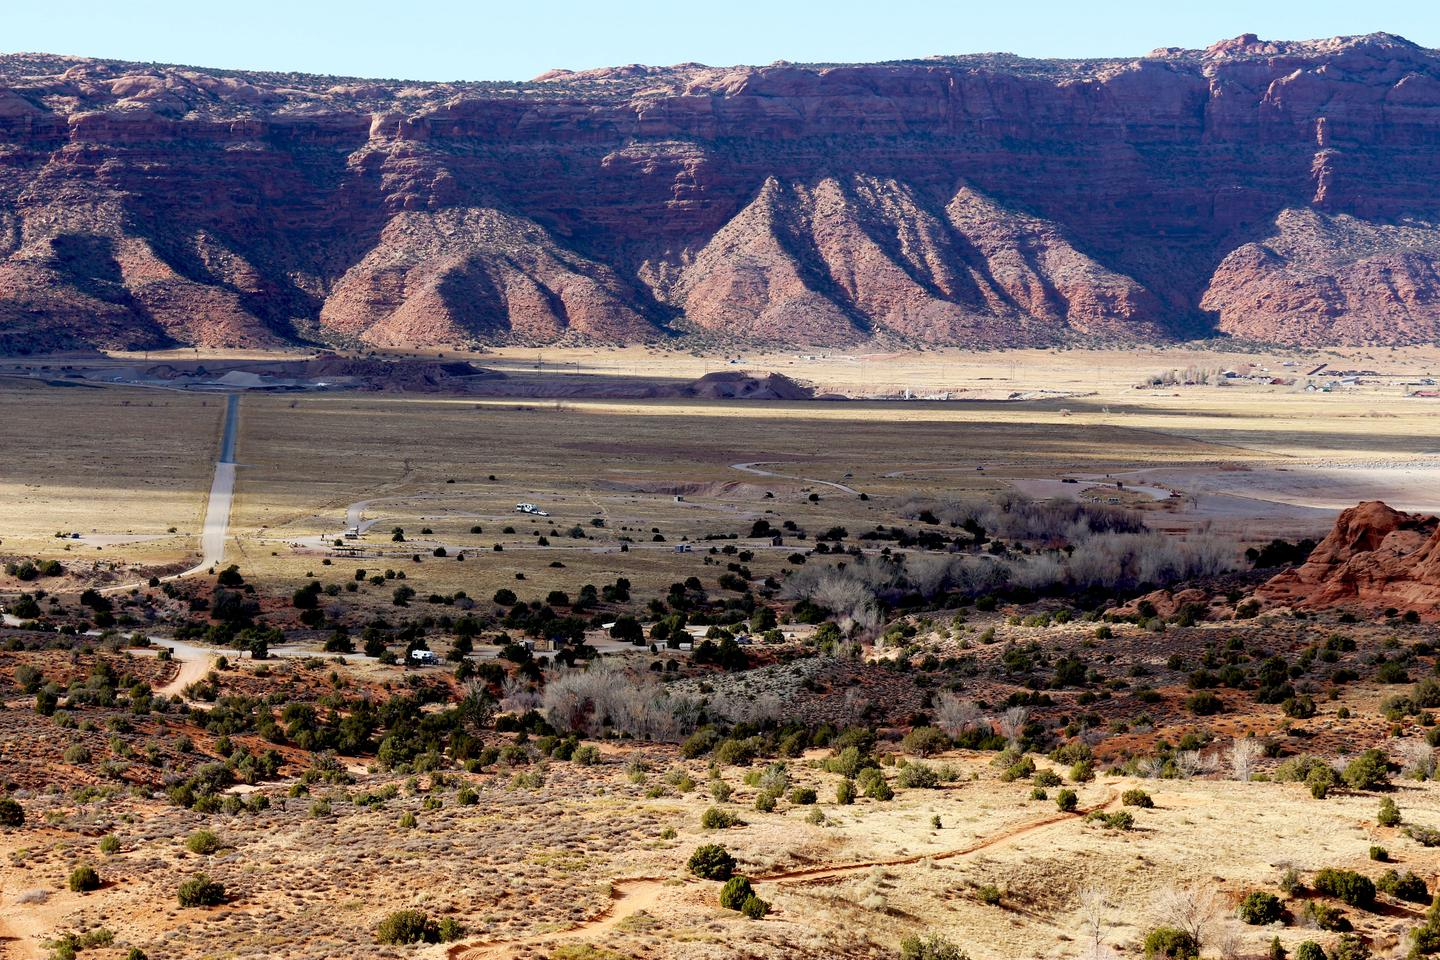 Overview of Ken's Lake Campground with desert cliffs lining the horizon.